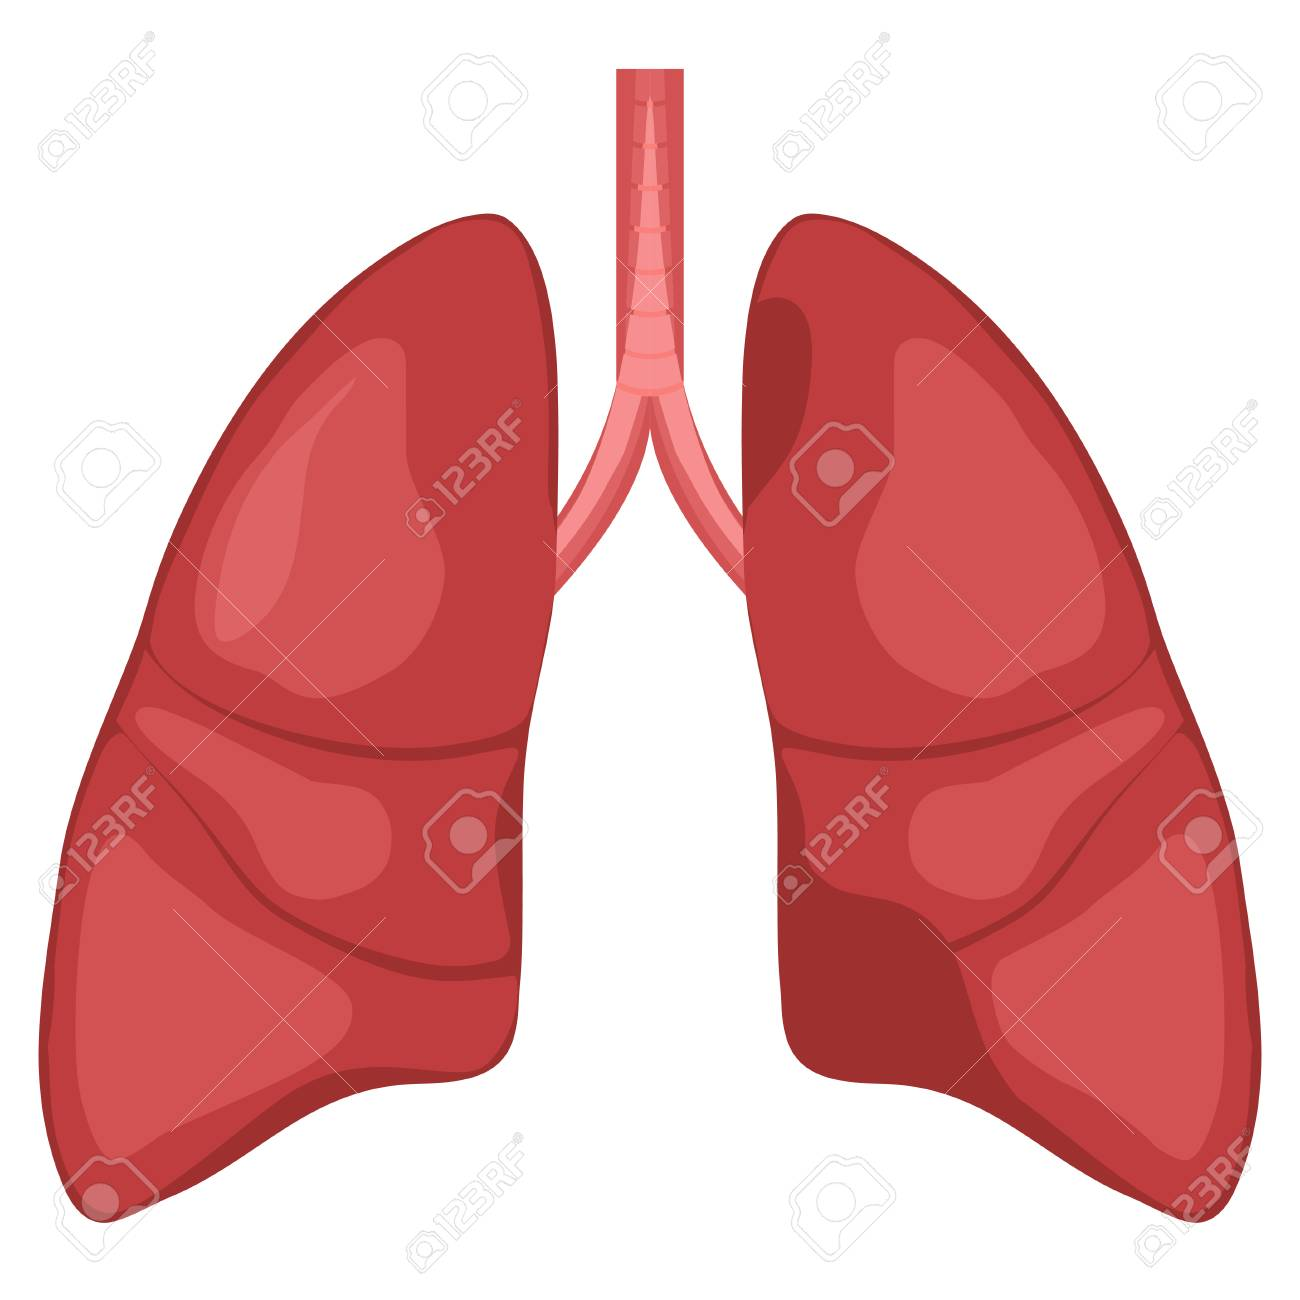 Human Lung Anatomy Diagram. Illness Respiratory Cancer Graphics ...